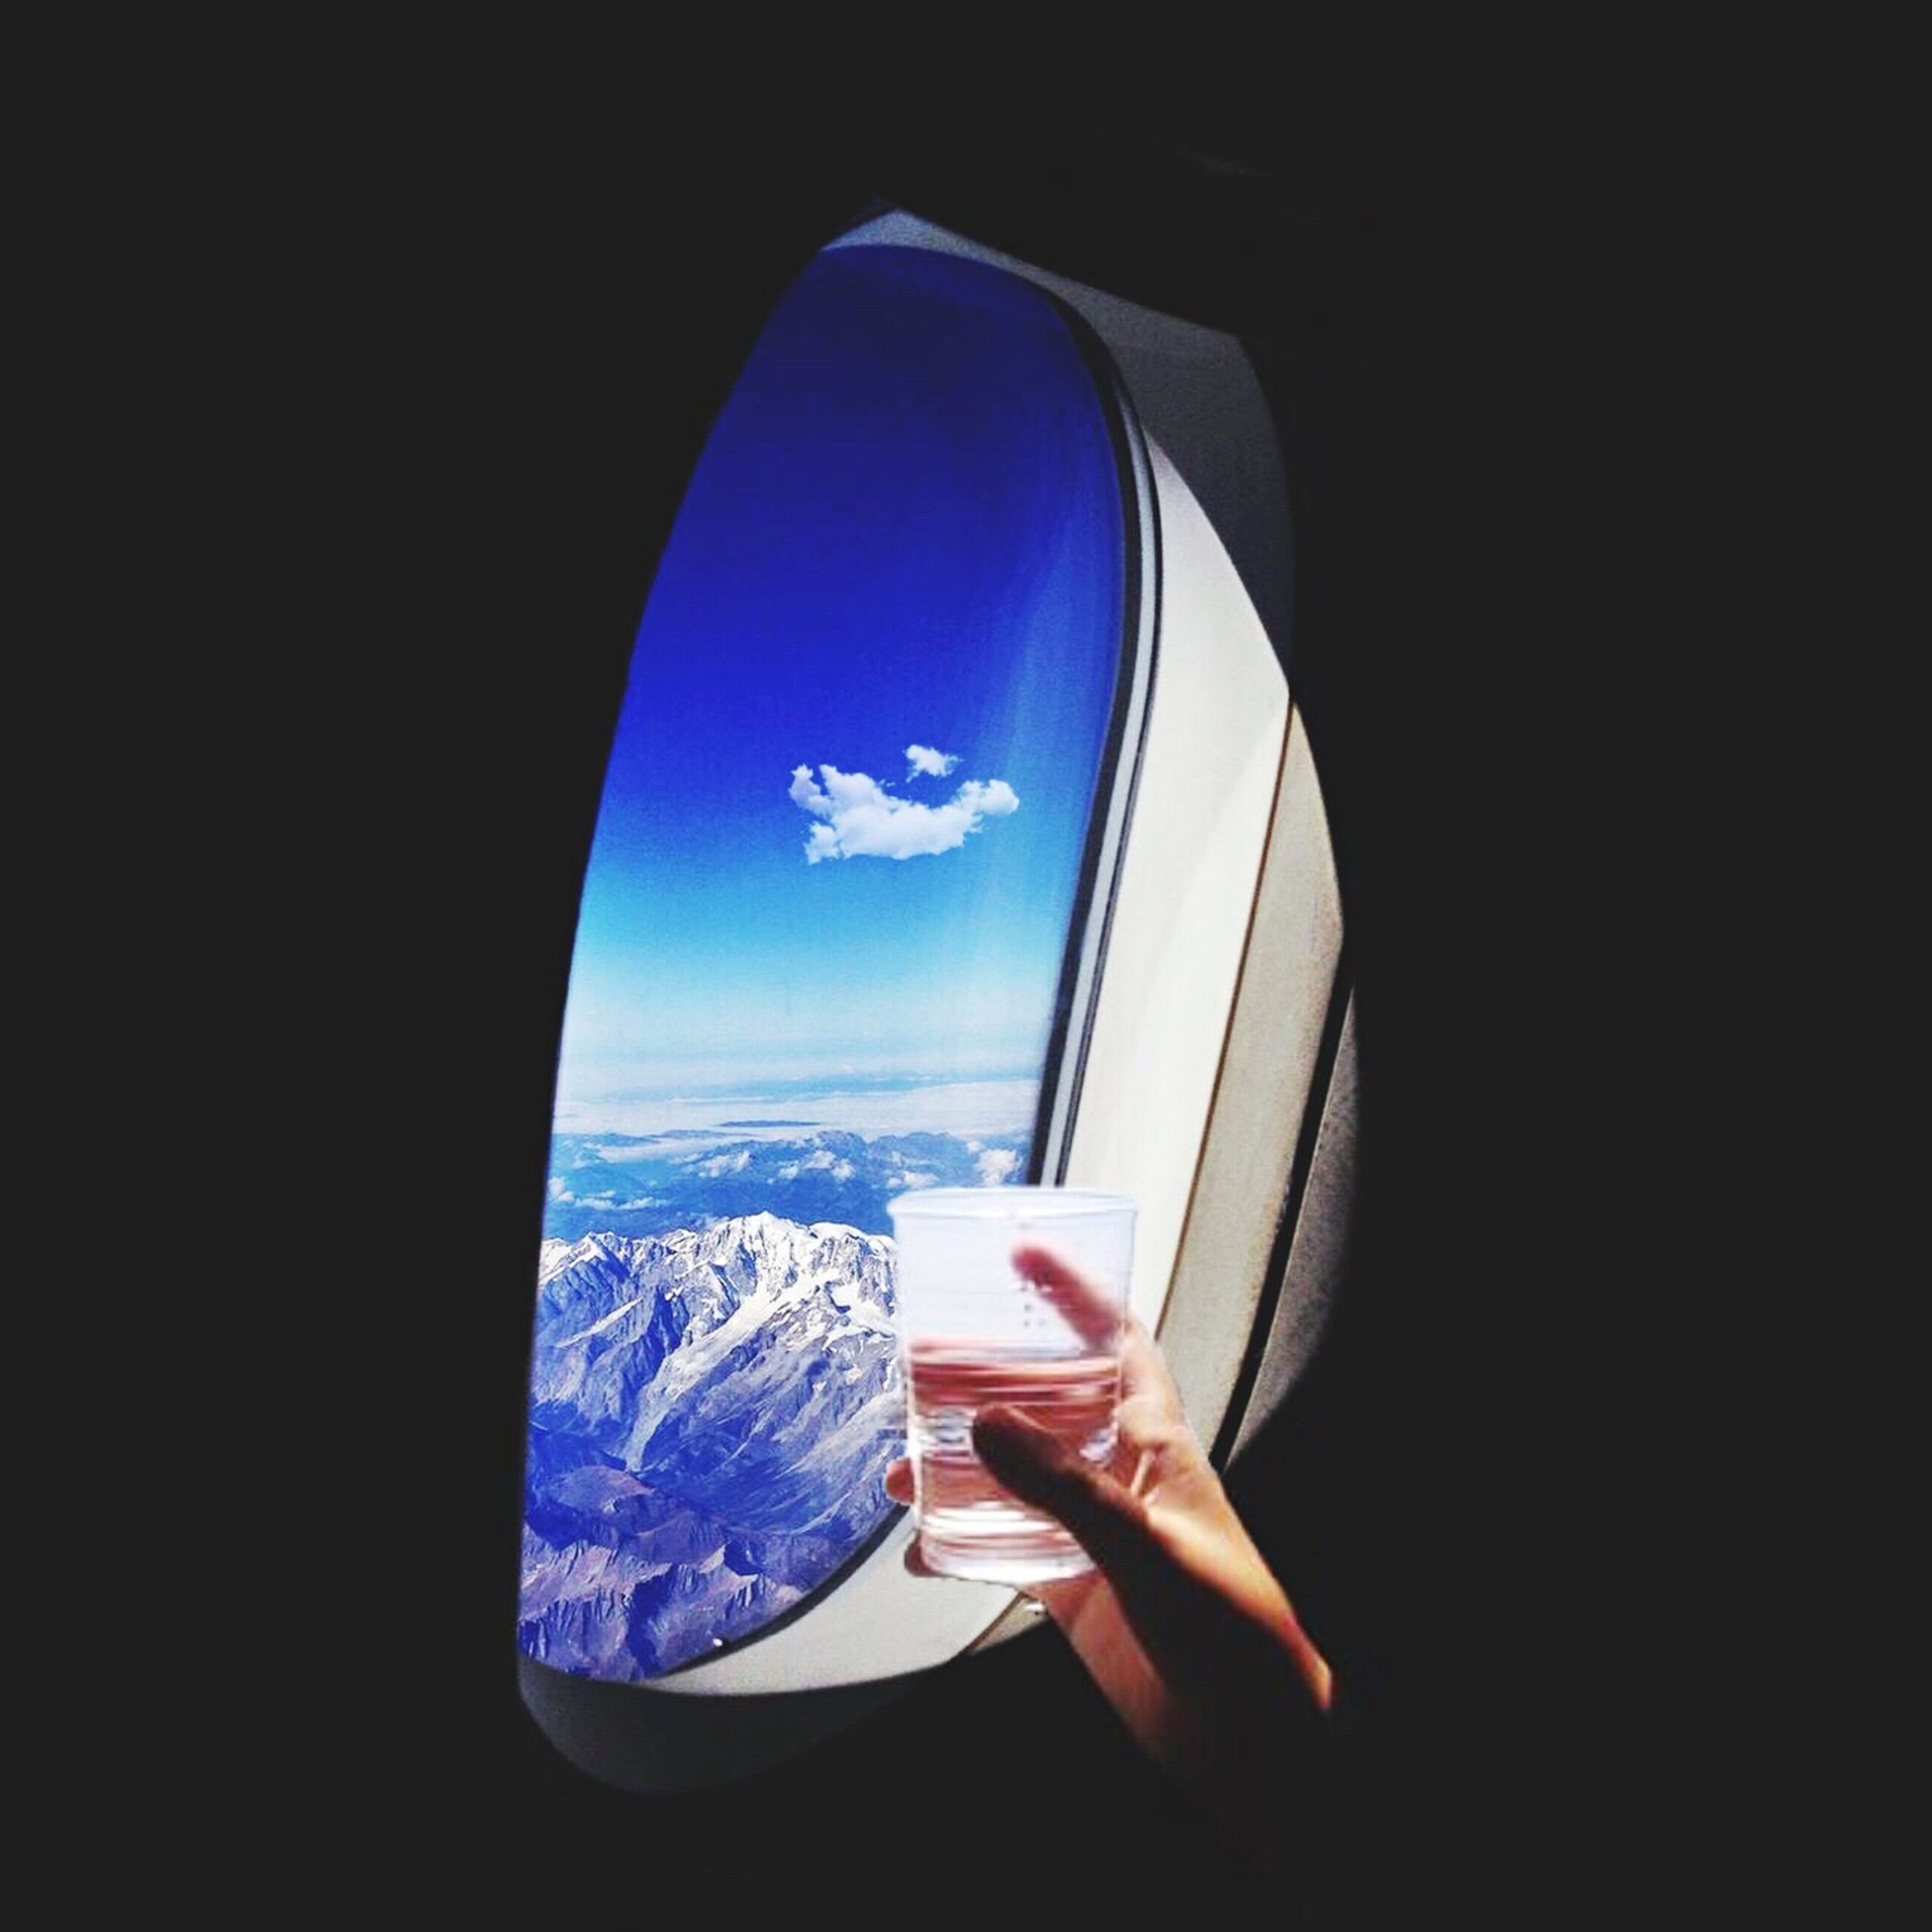 transportation, mode of transport, airplane, air vehicle, window, flying, part of, vehicle interior, reflection, blue, glass - material, mid-air, travel, transparent, cropped, sky, journey, close-up, fish-eye lens, one person